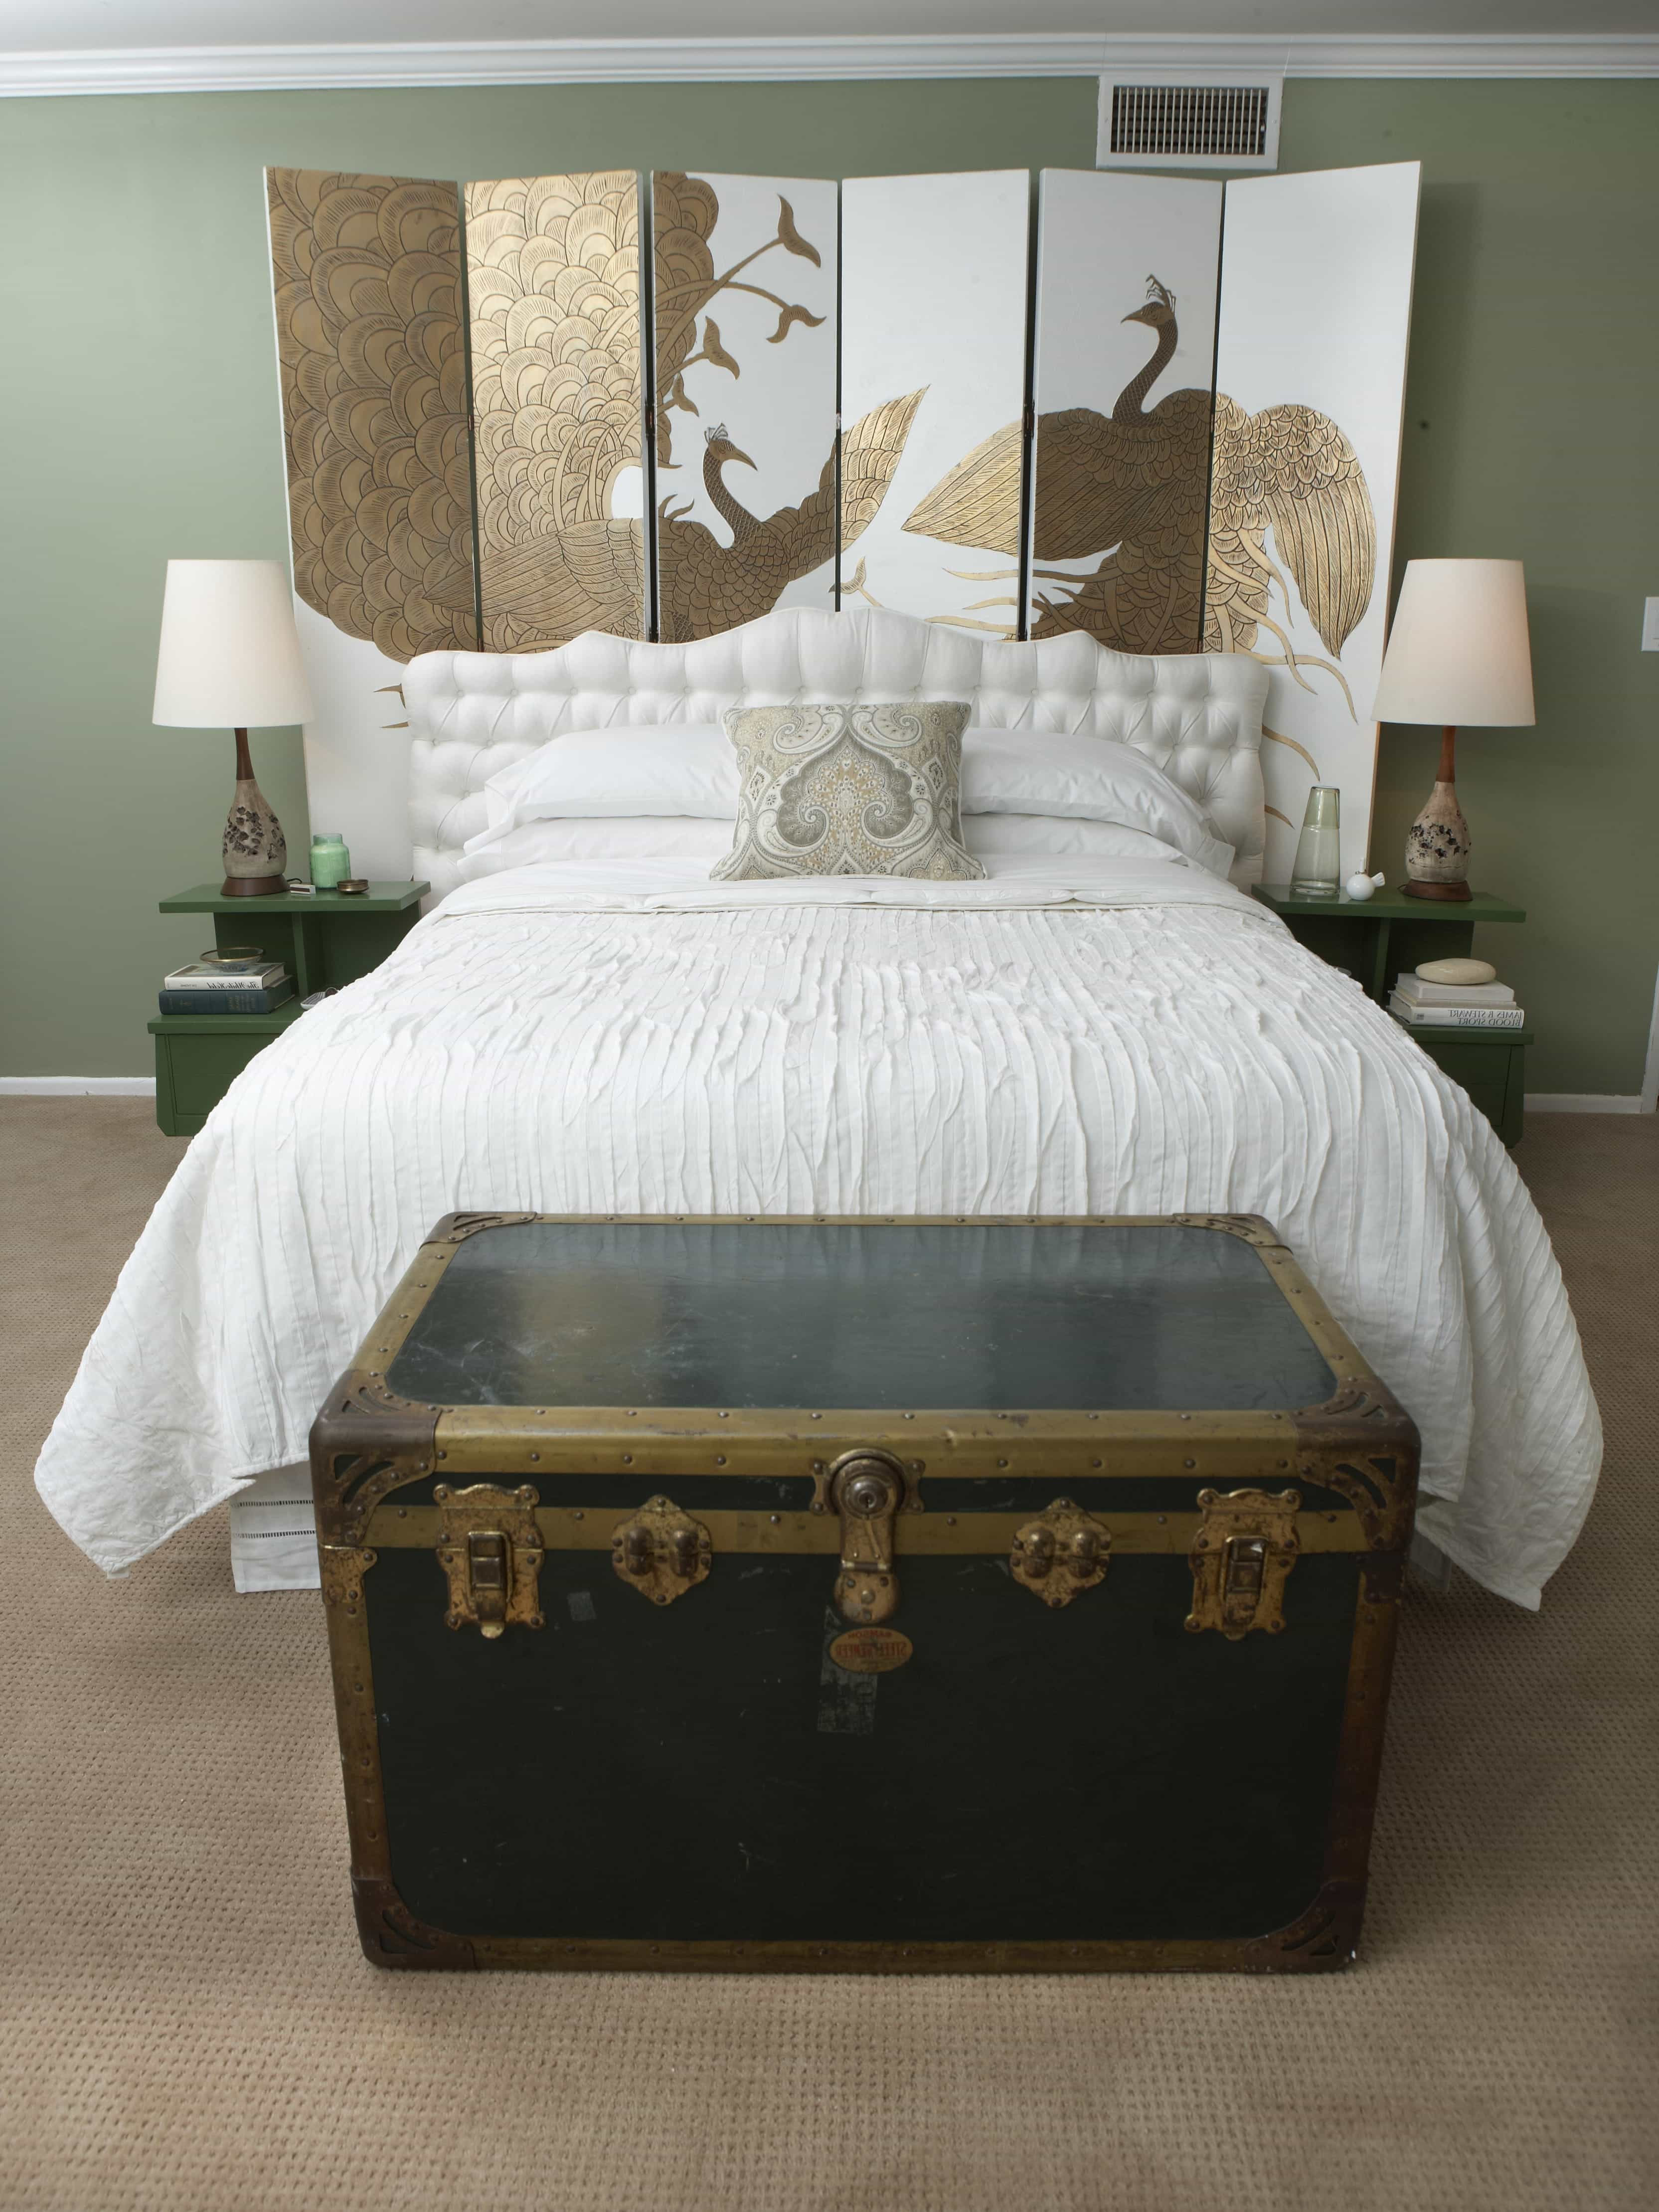 Green Bedroom With Asian Accents (Image 18 of 32)